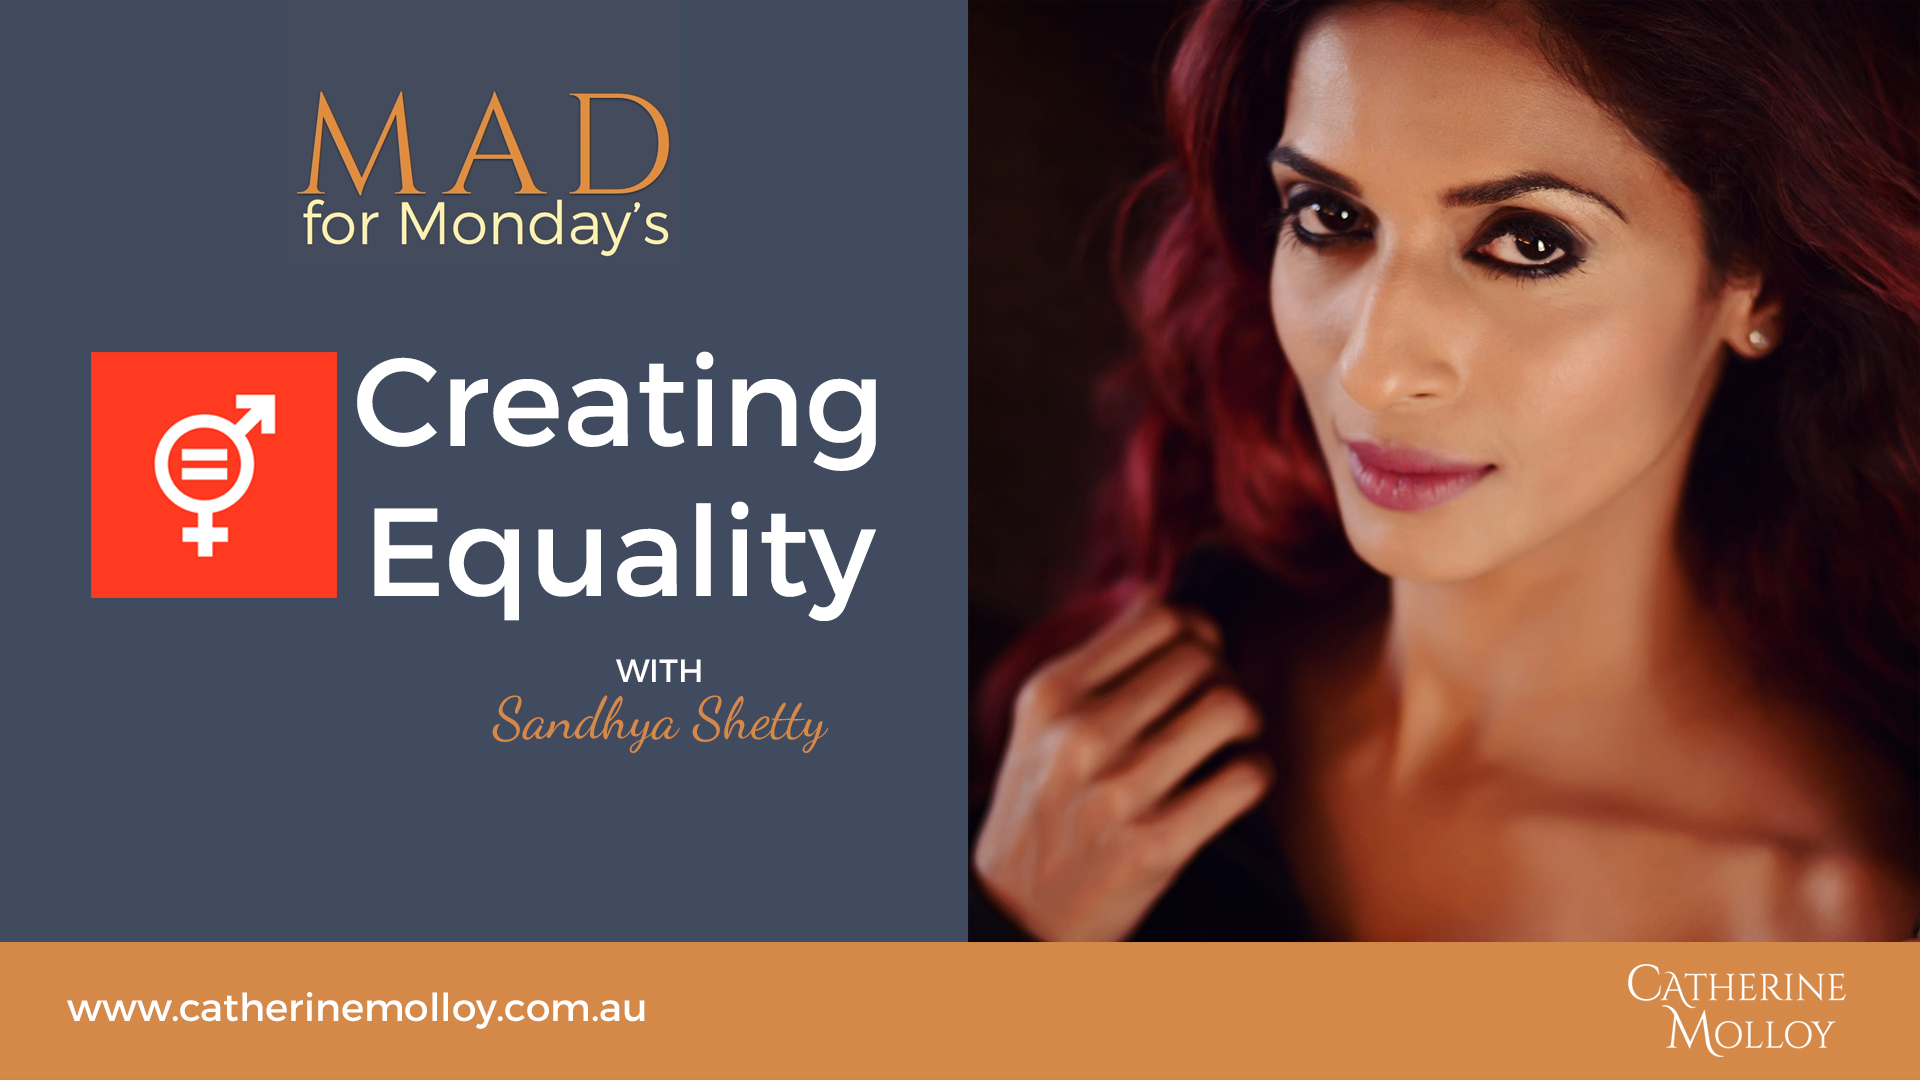 MAD for Monday's – Creating Equality